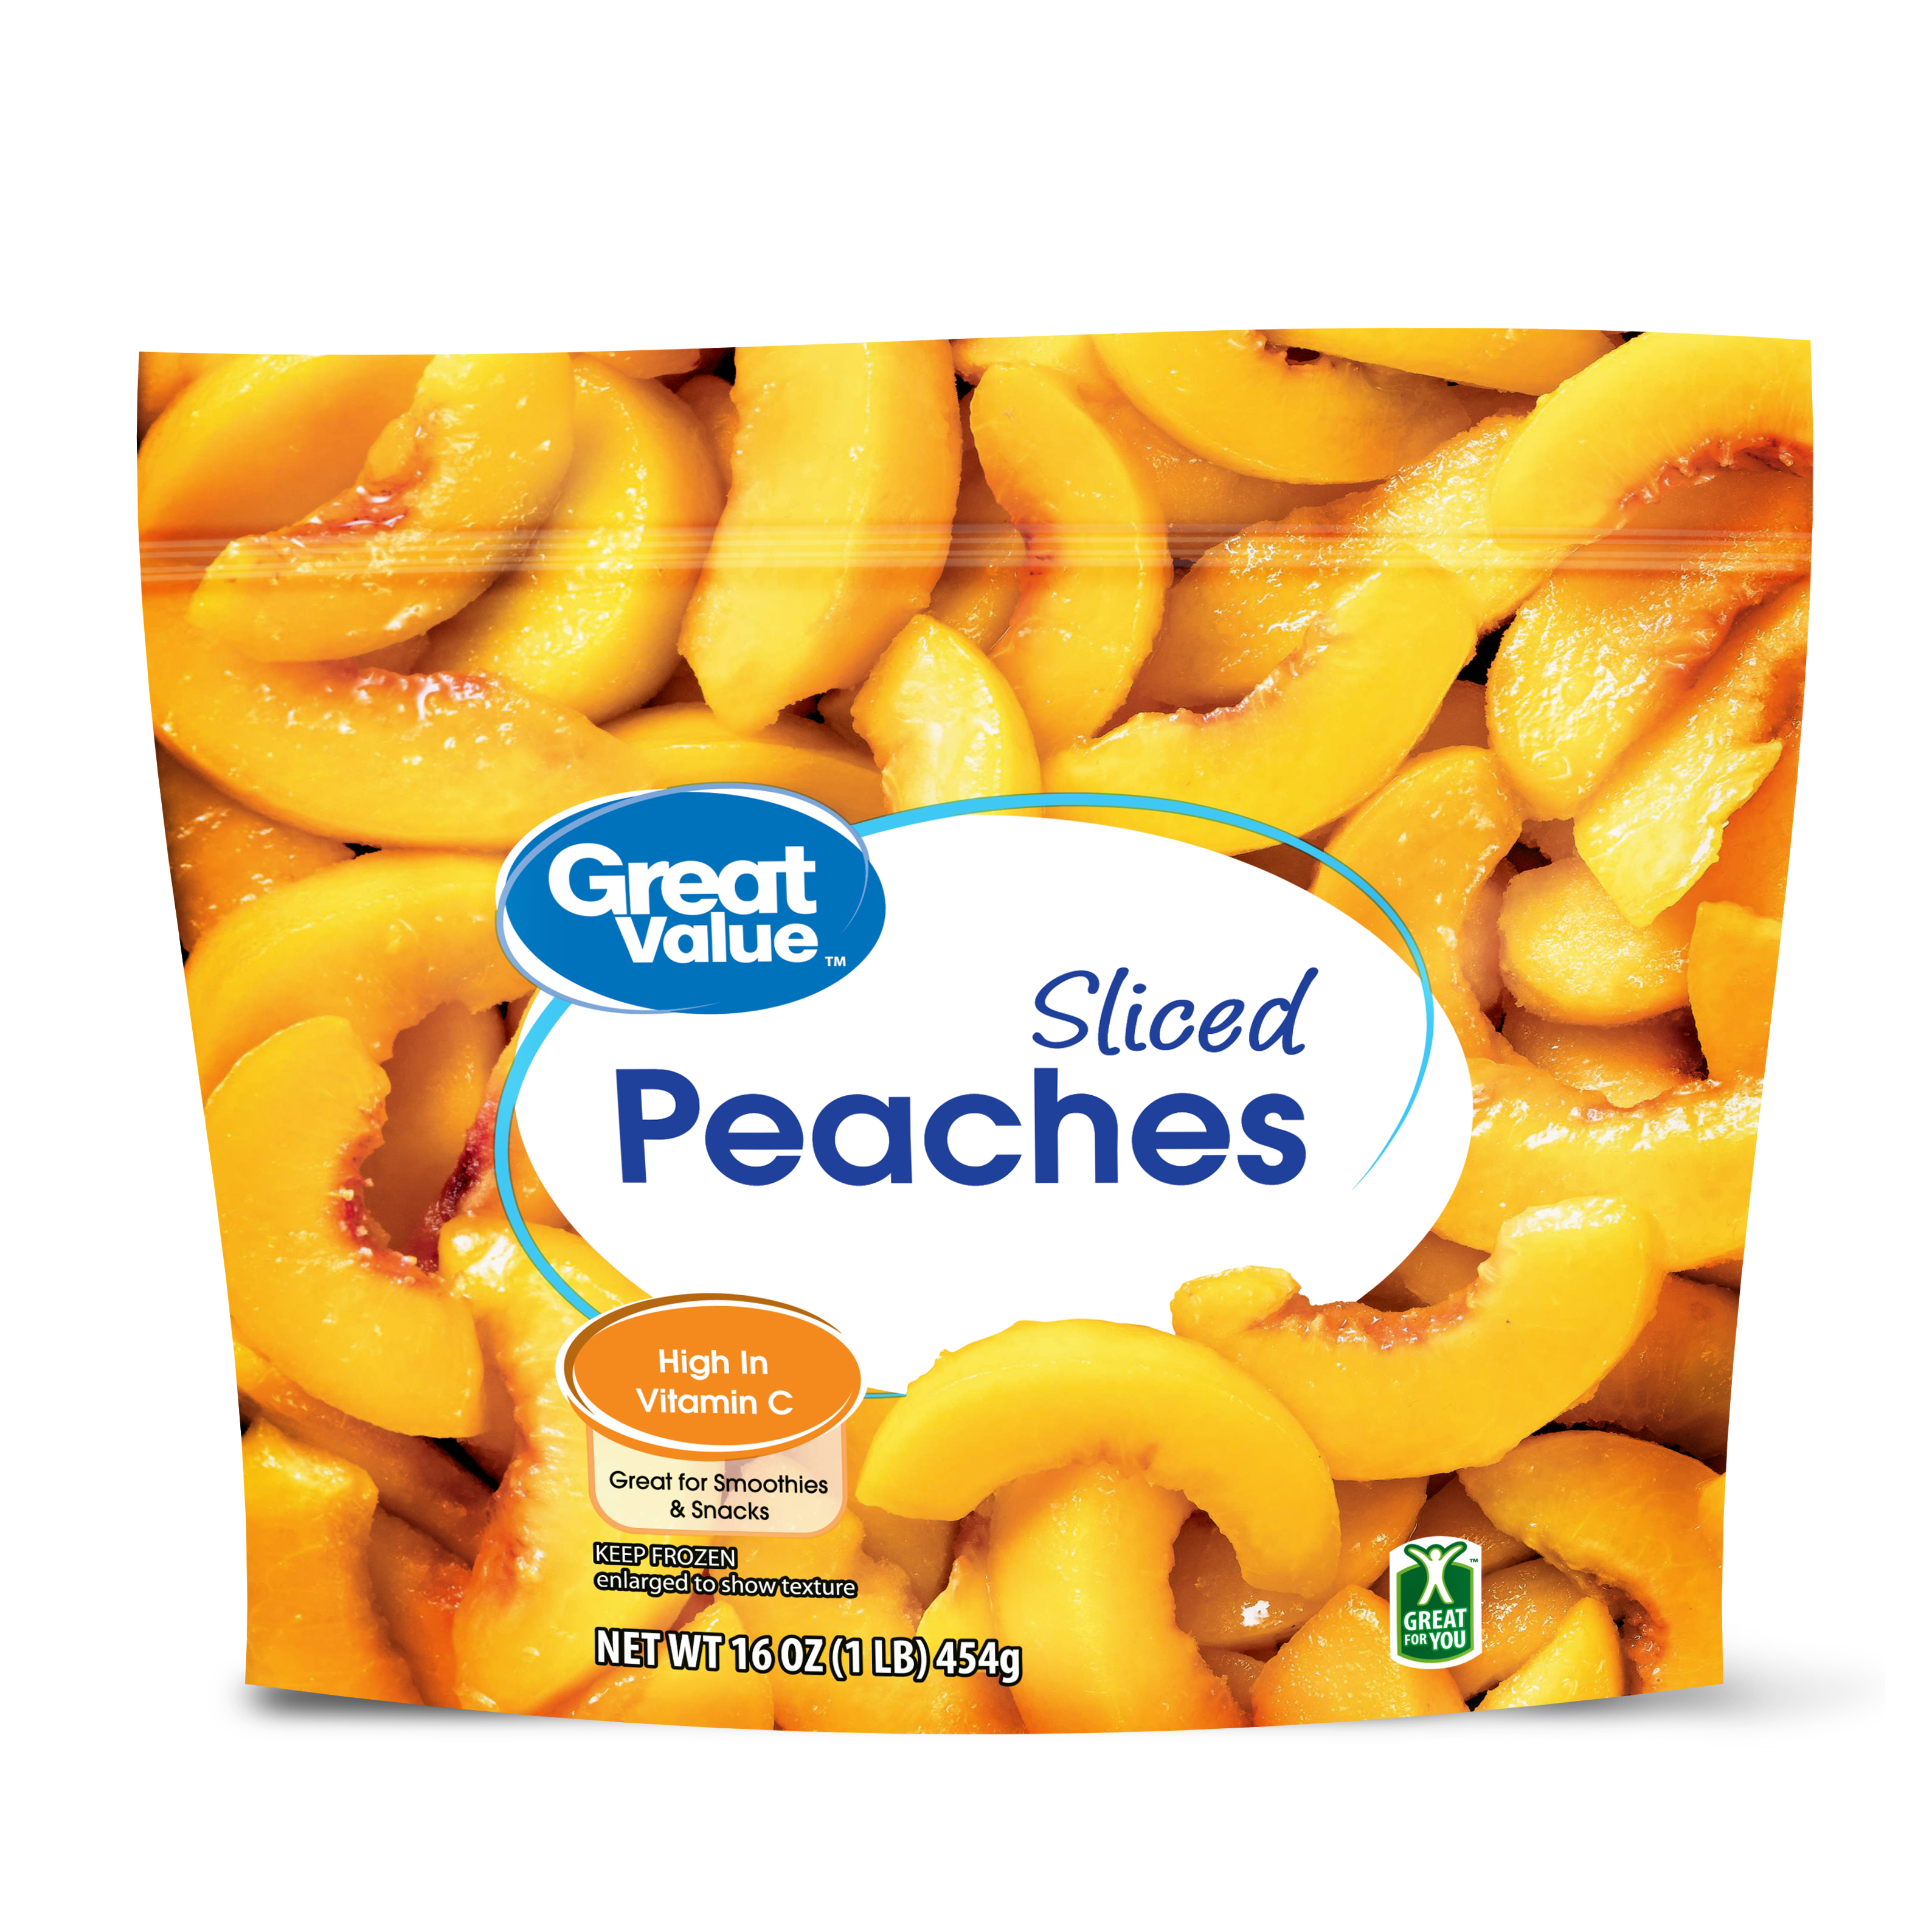 Great Value Sliced Peaches, 16 oz